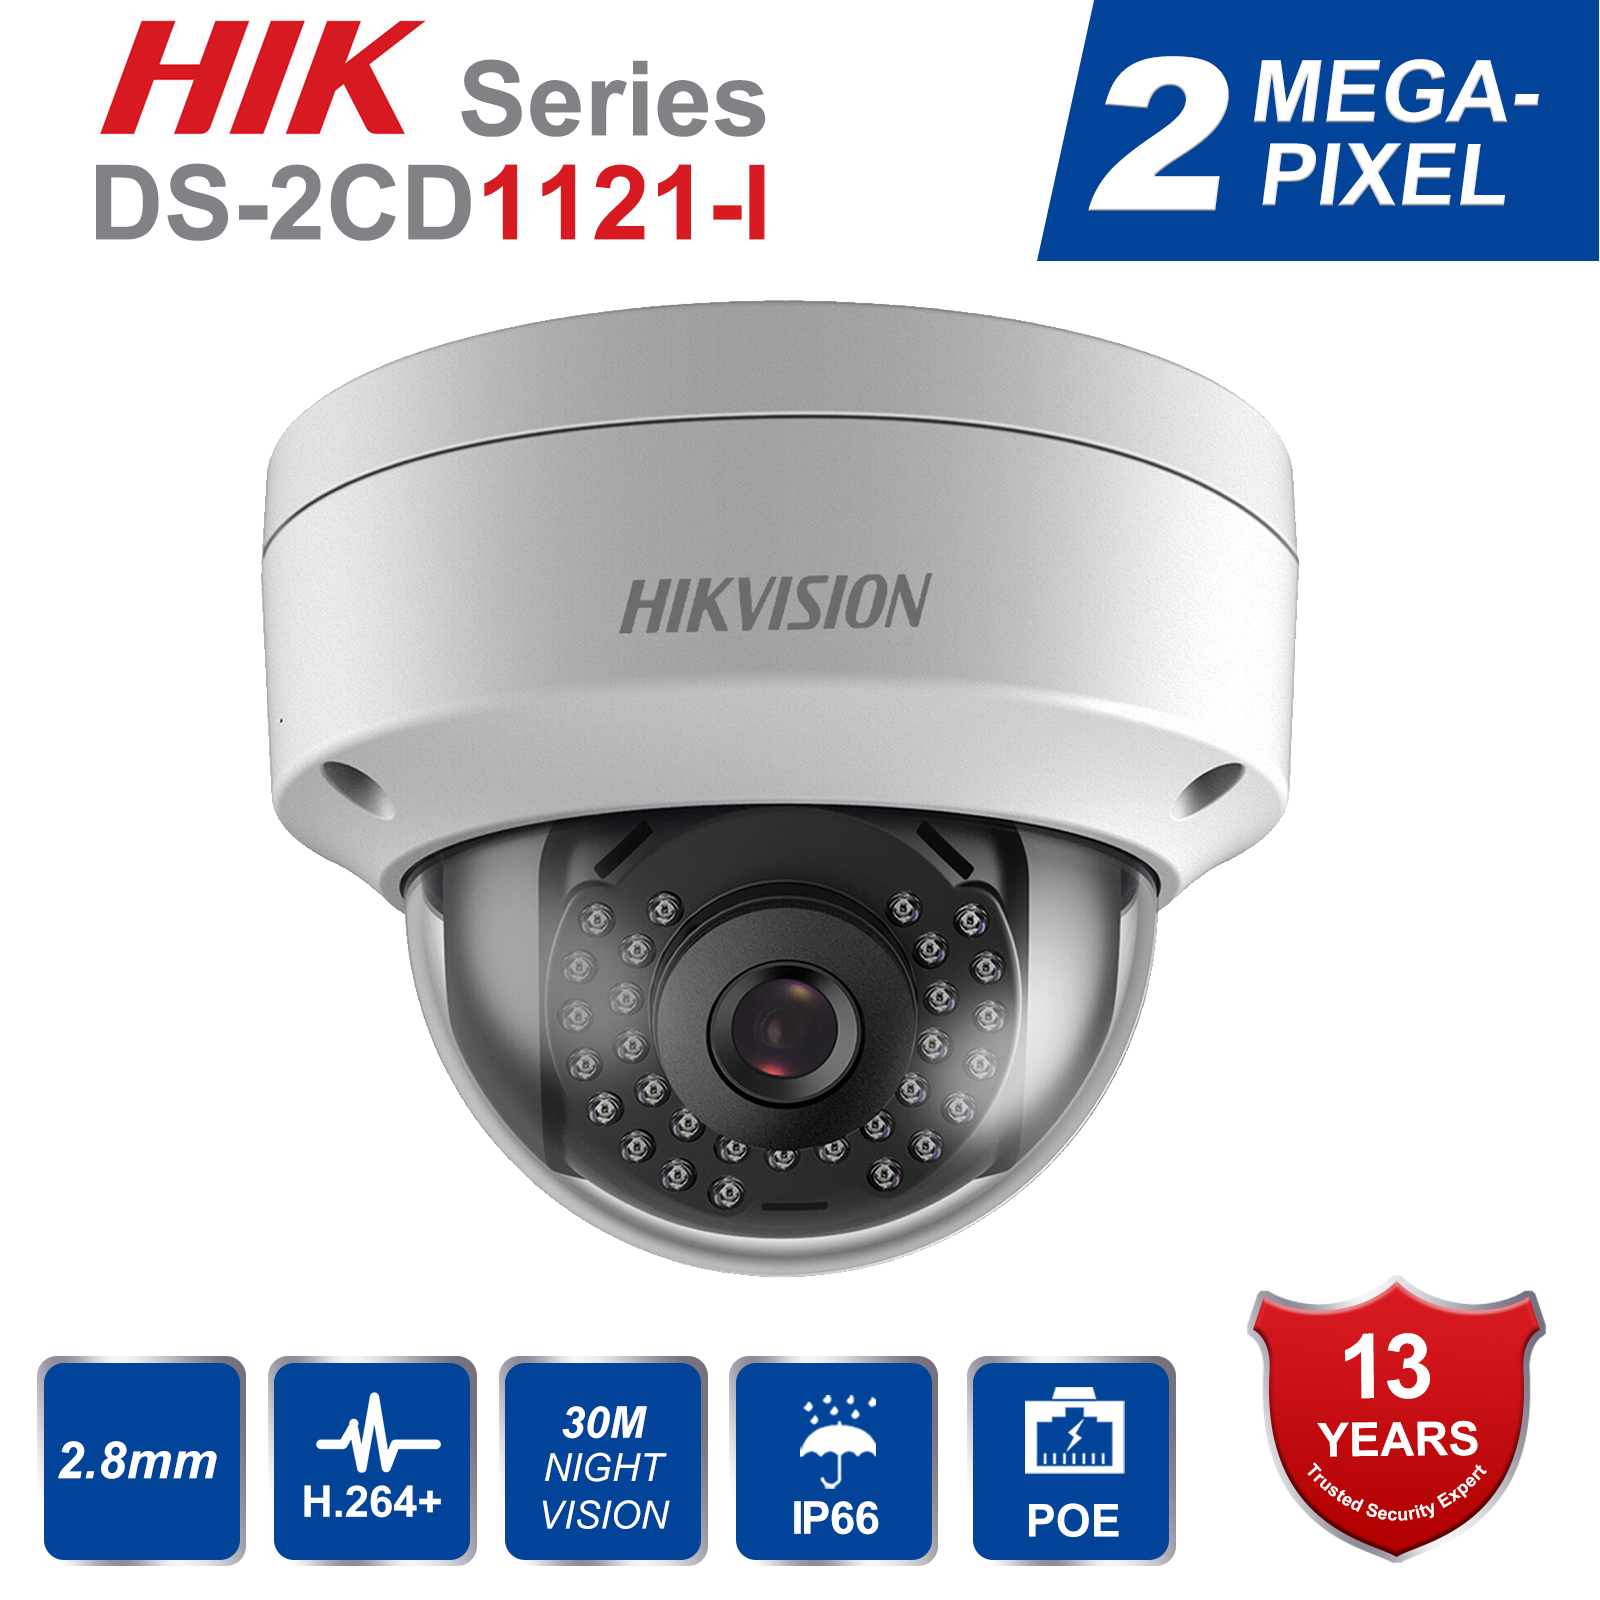 DS-2CD1121-I 2MP POE Mini Dome Security IP Camera IP66 CCTV Network Camera Replace DS-2CD2125F-IS DS-2CD2132F-ISDS-2CD1121-I 2MP POE Mini Dome Security IP Camera IP66 CCTV Network Camera Replace DS-2CD2125F-IS DS-2CD2132F-IS